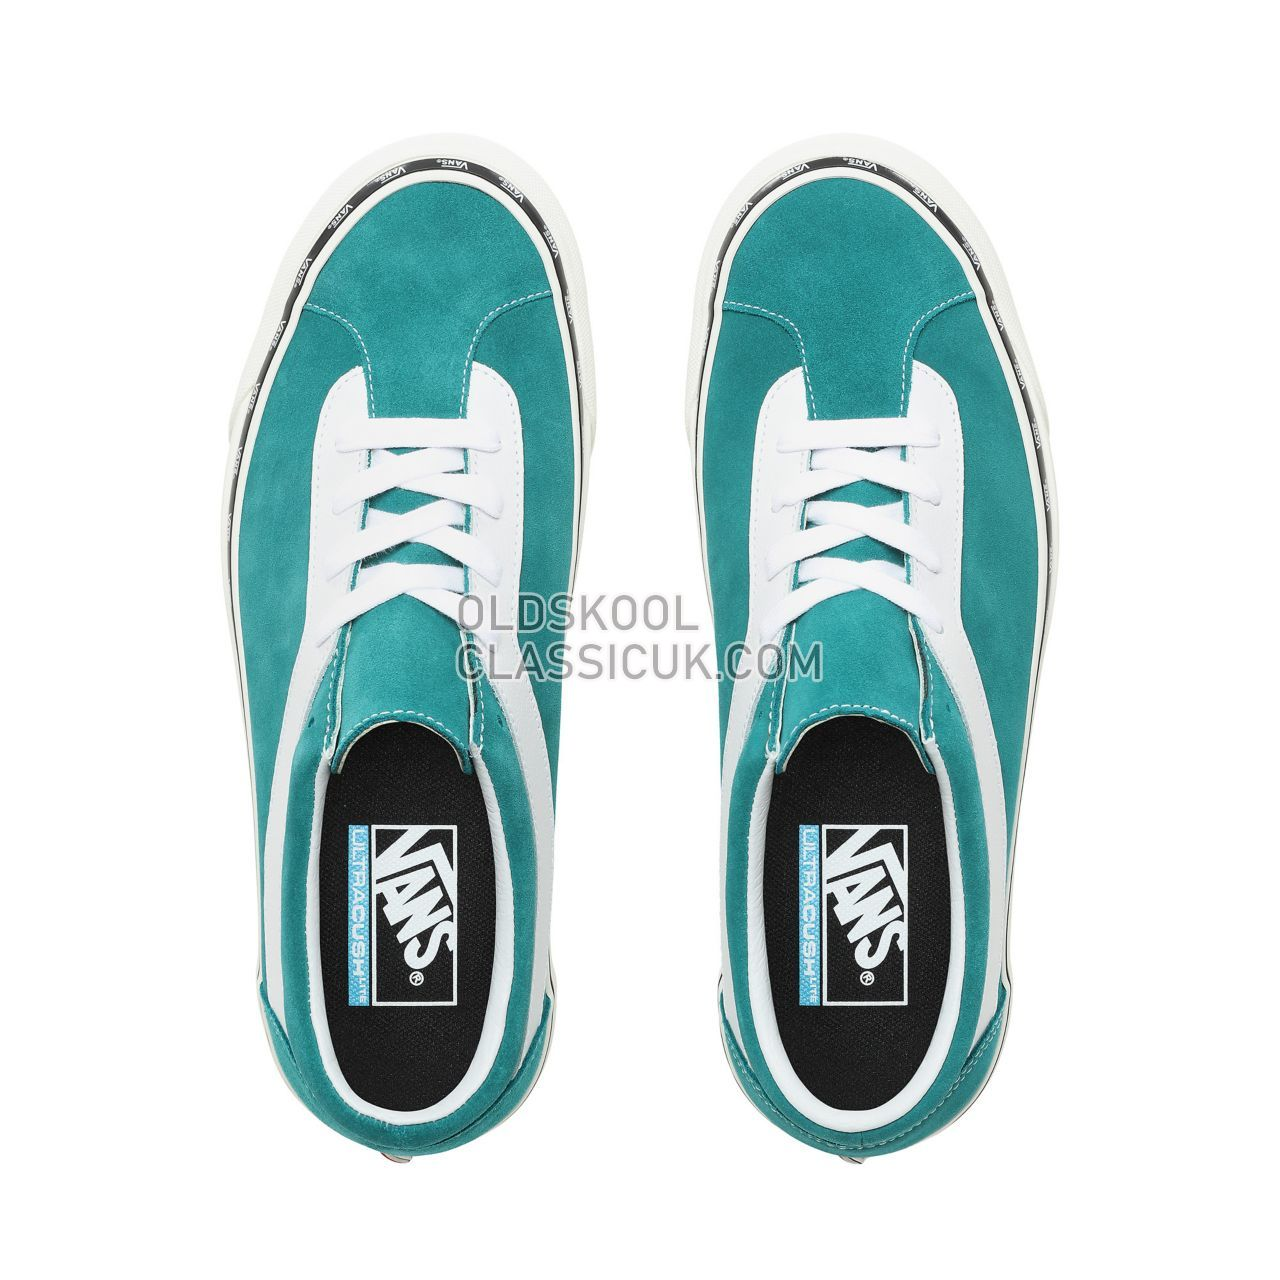 Vans New Issue Bold Ni Sneakers Mens (New Issue) Quetzal Green/True White VN0A3WLPVLG Shoes